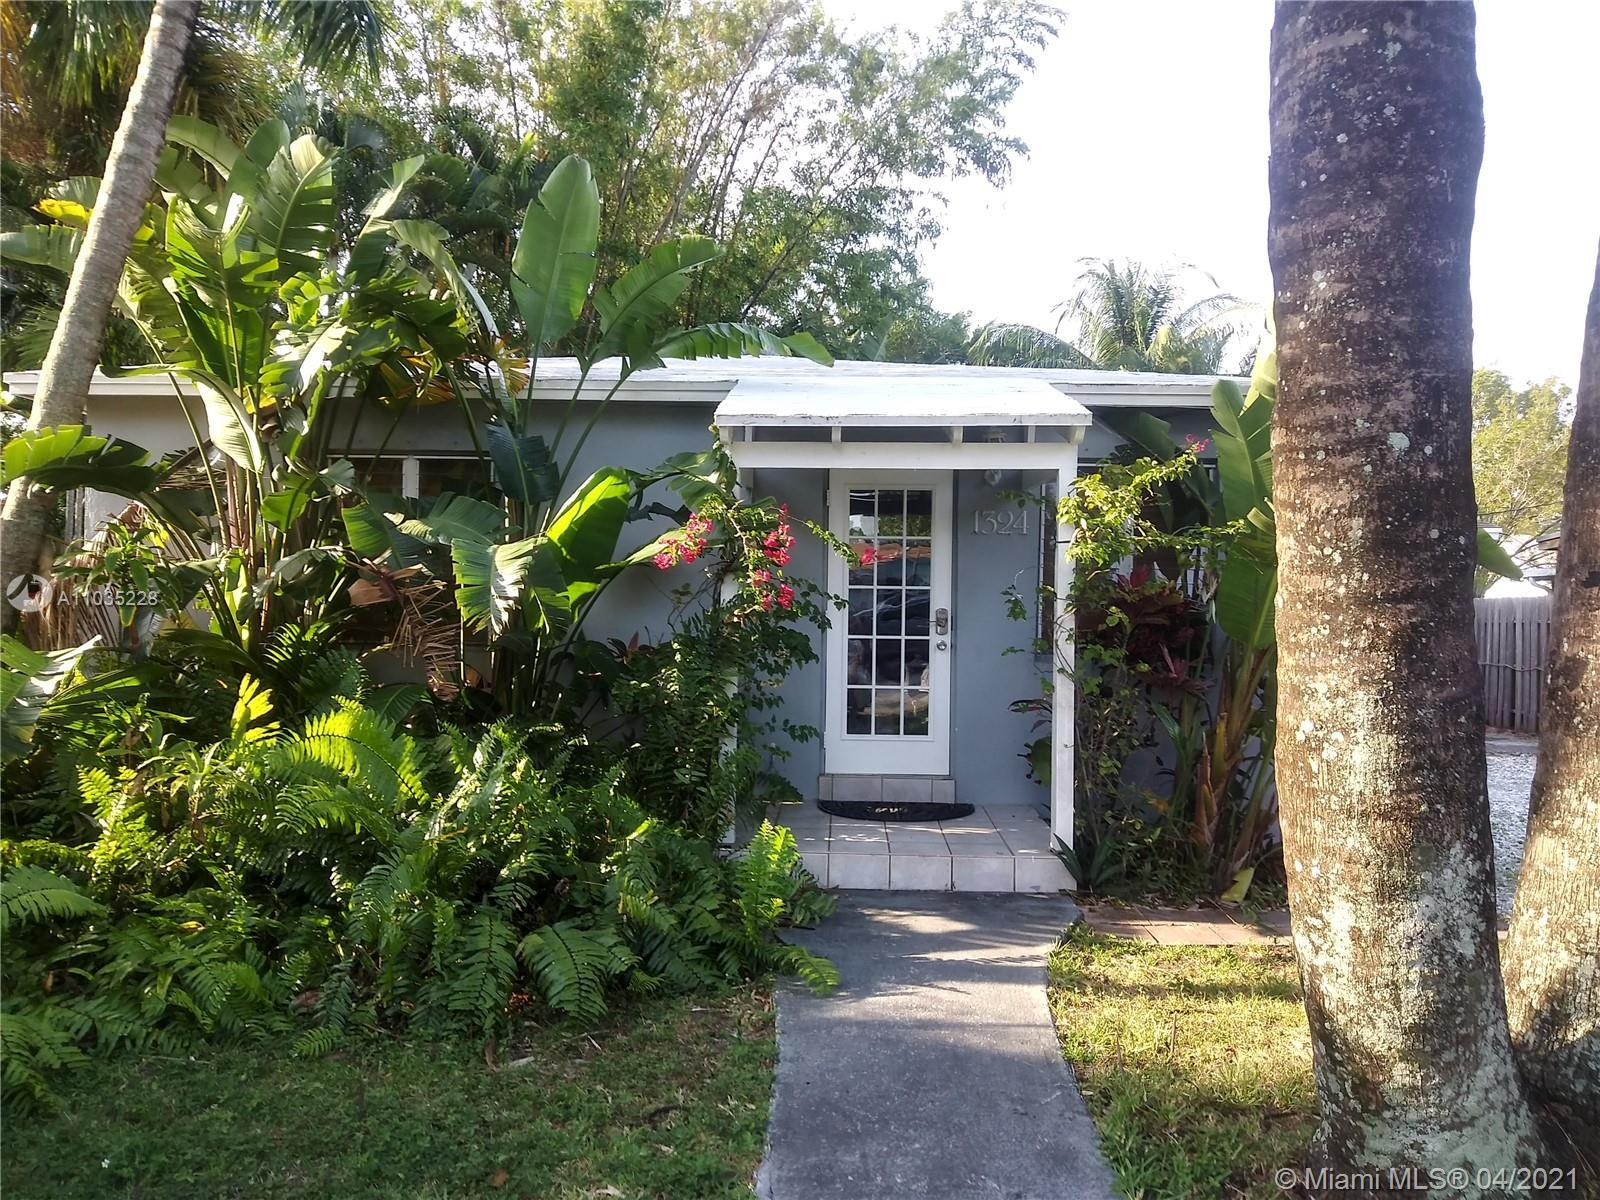 3 BR/2 BATH home with COTTAGE on over sized lot in Edgewood. 3 separate lushly landscaped yards. 3/2